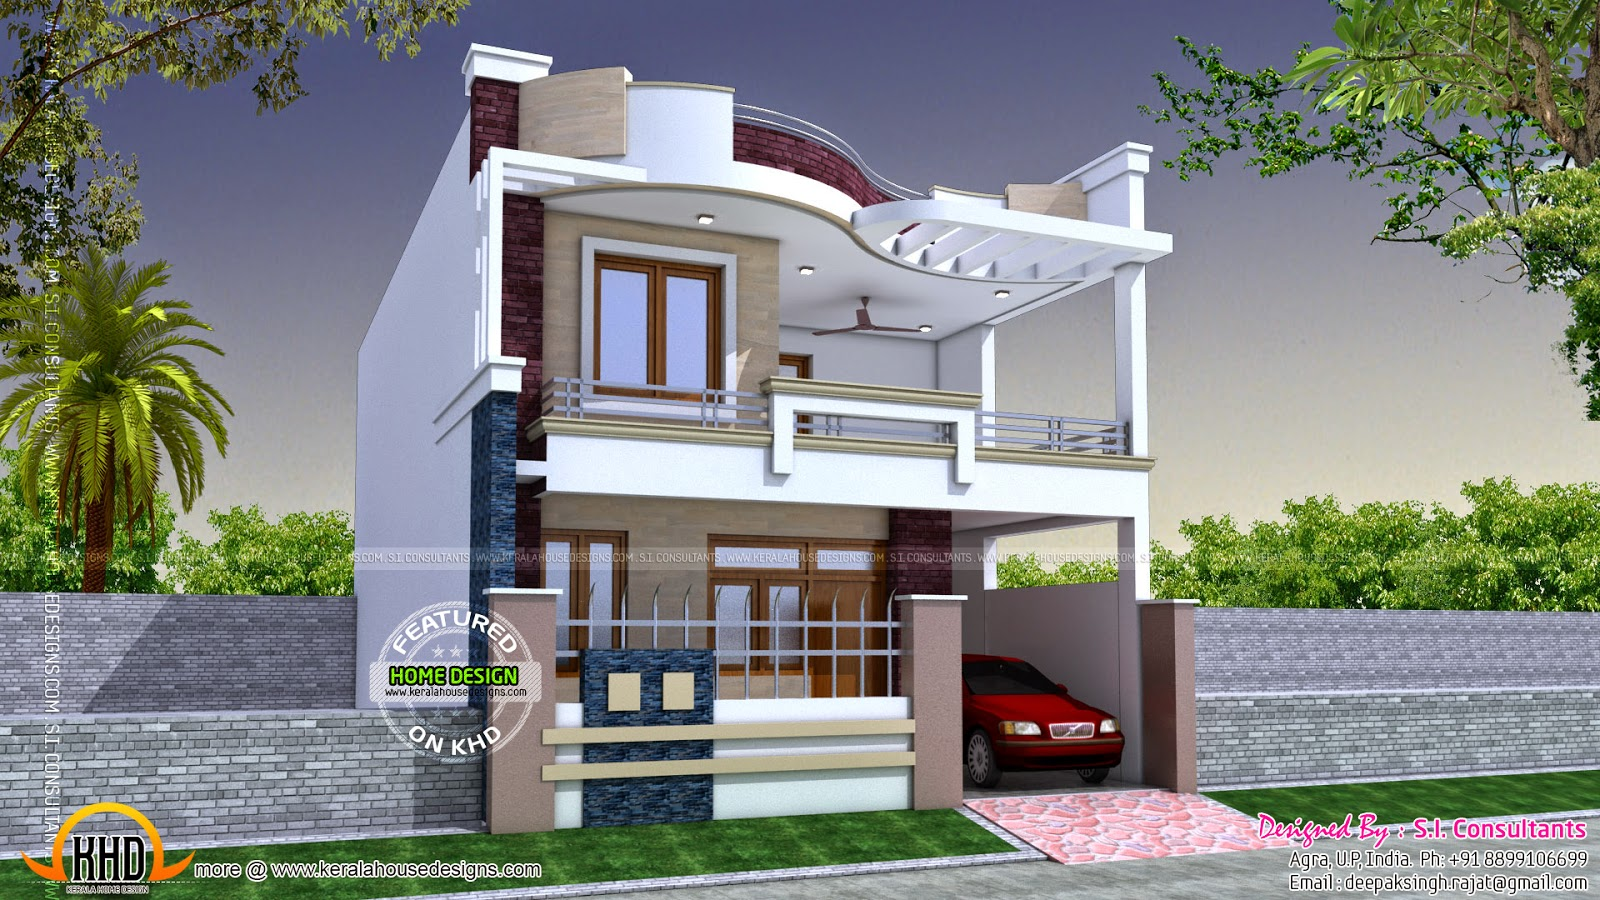 Modern indian home design kerala home design and floor plans for P o p indian home designs